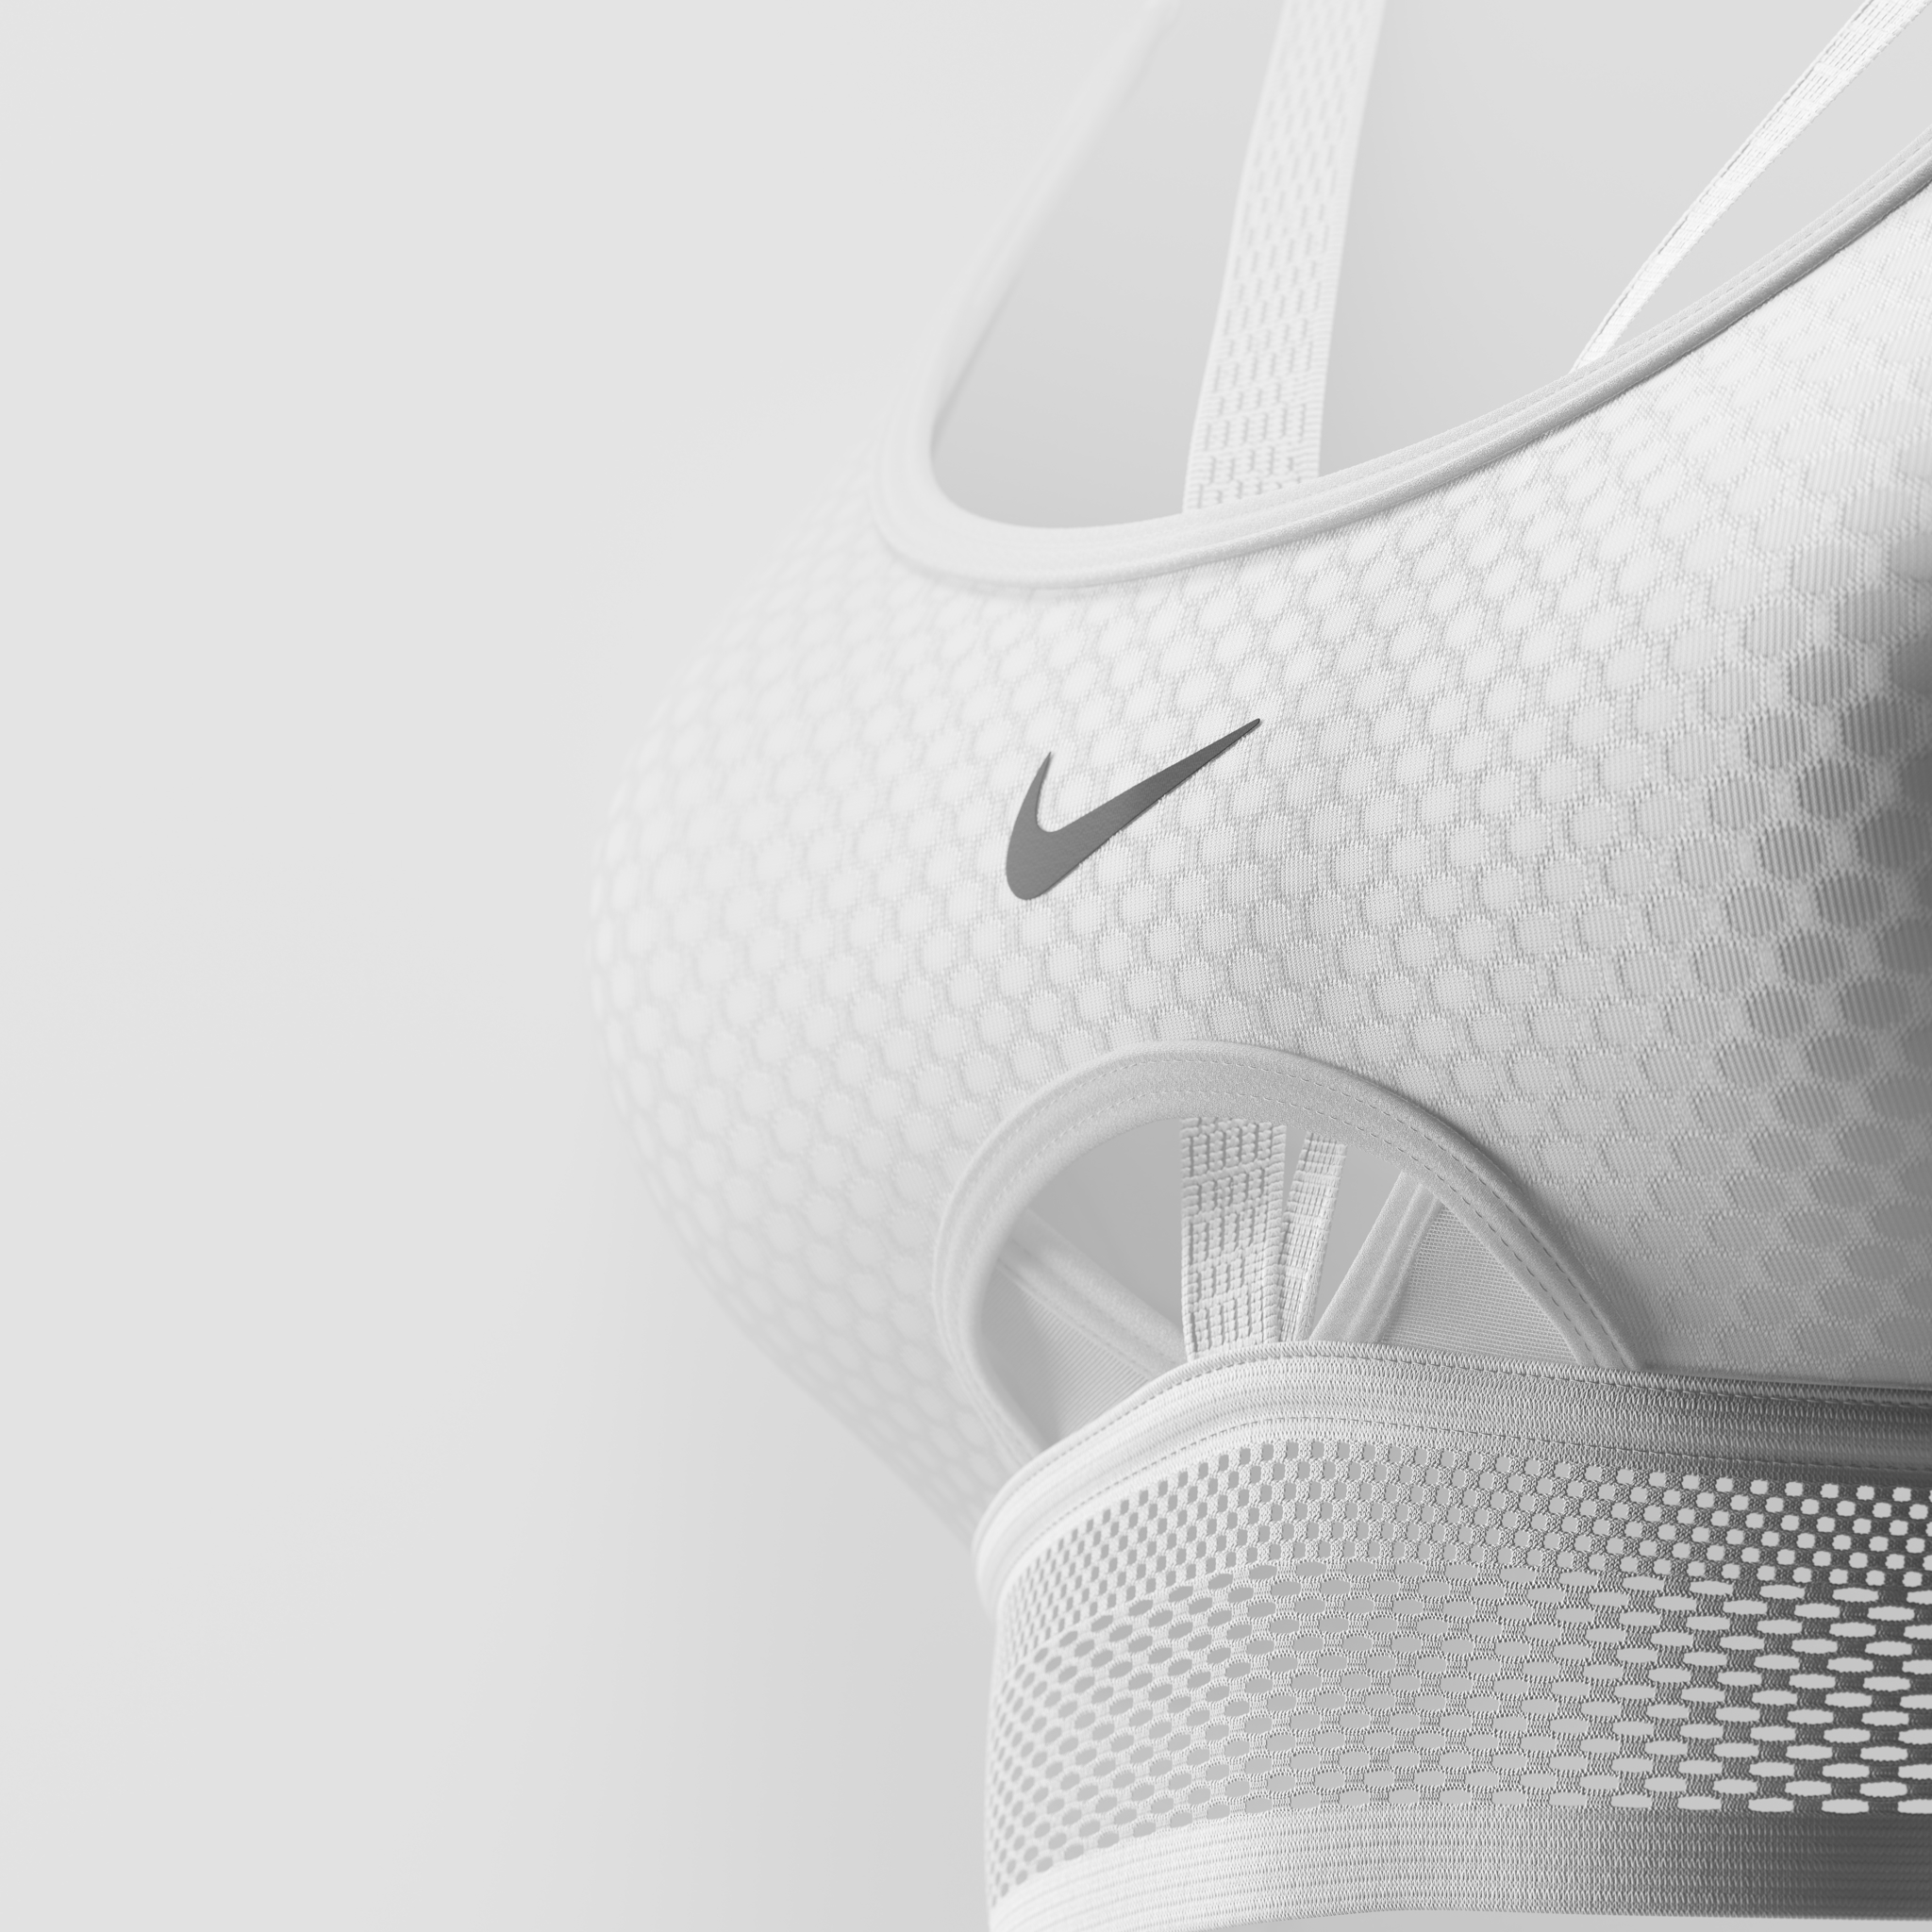 Nike_Ultrabreathe_Bra_Indy_White_Closeup_01_2K